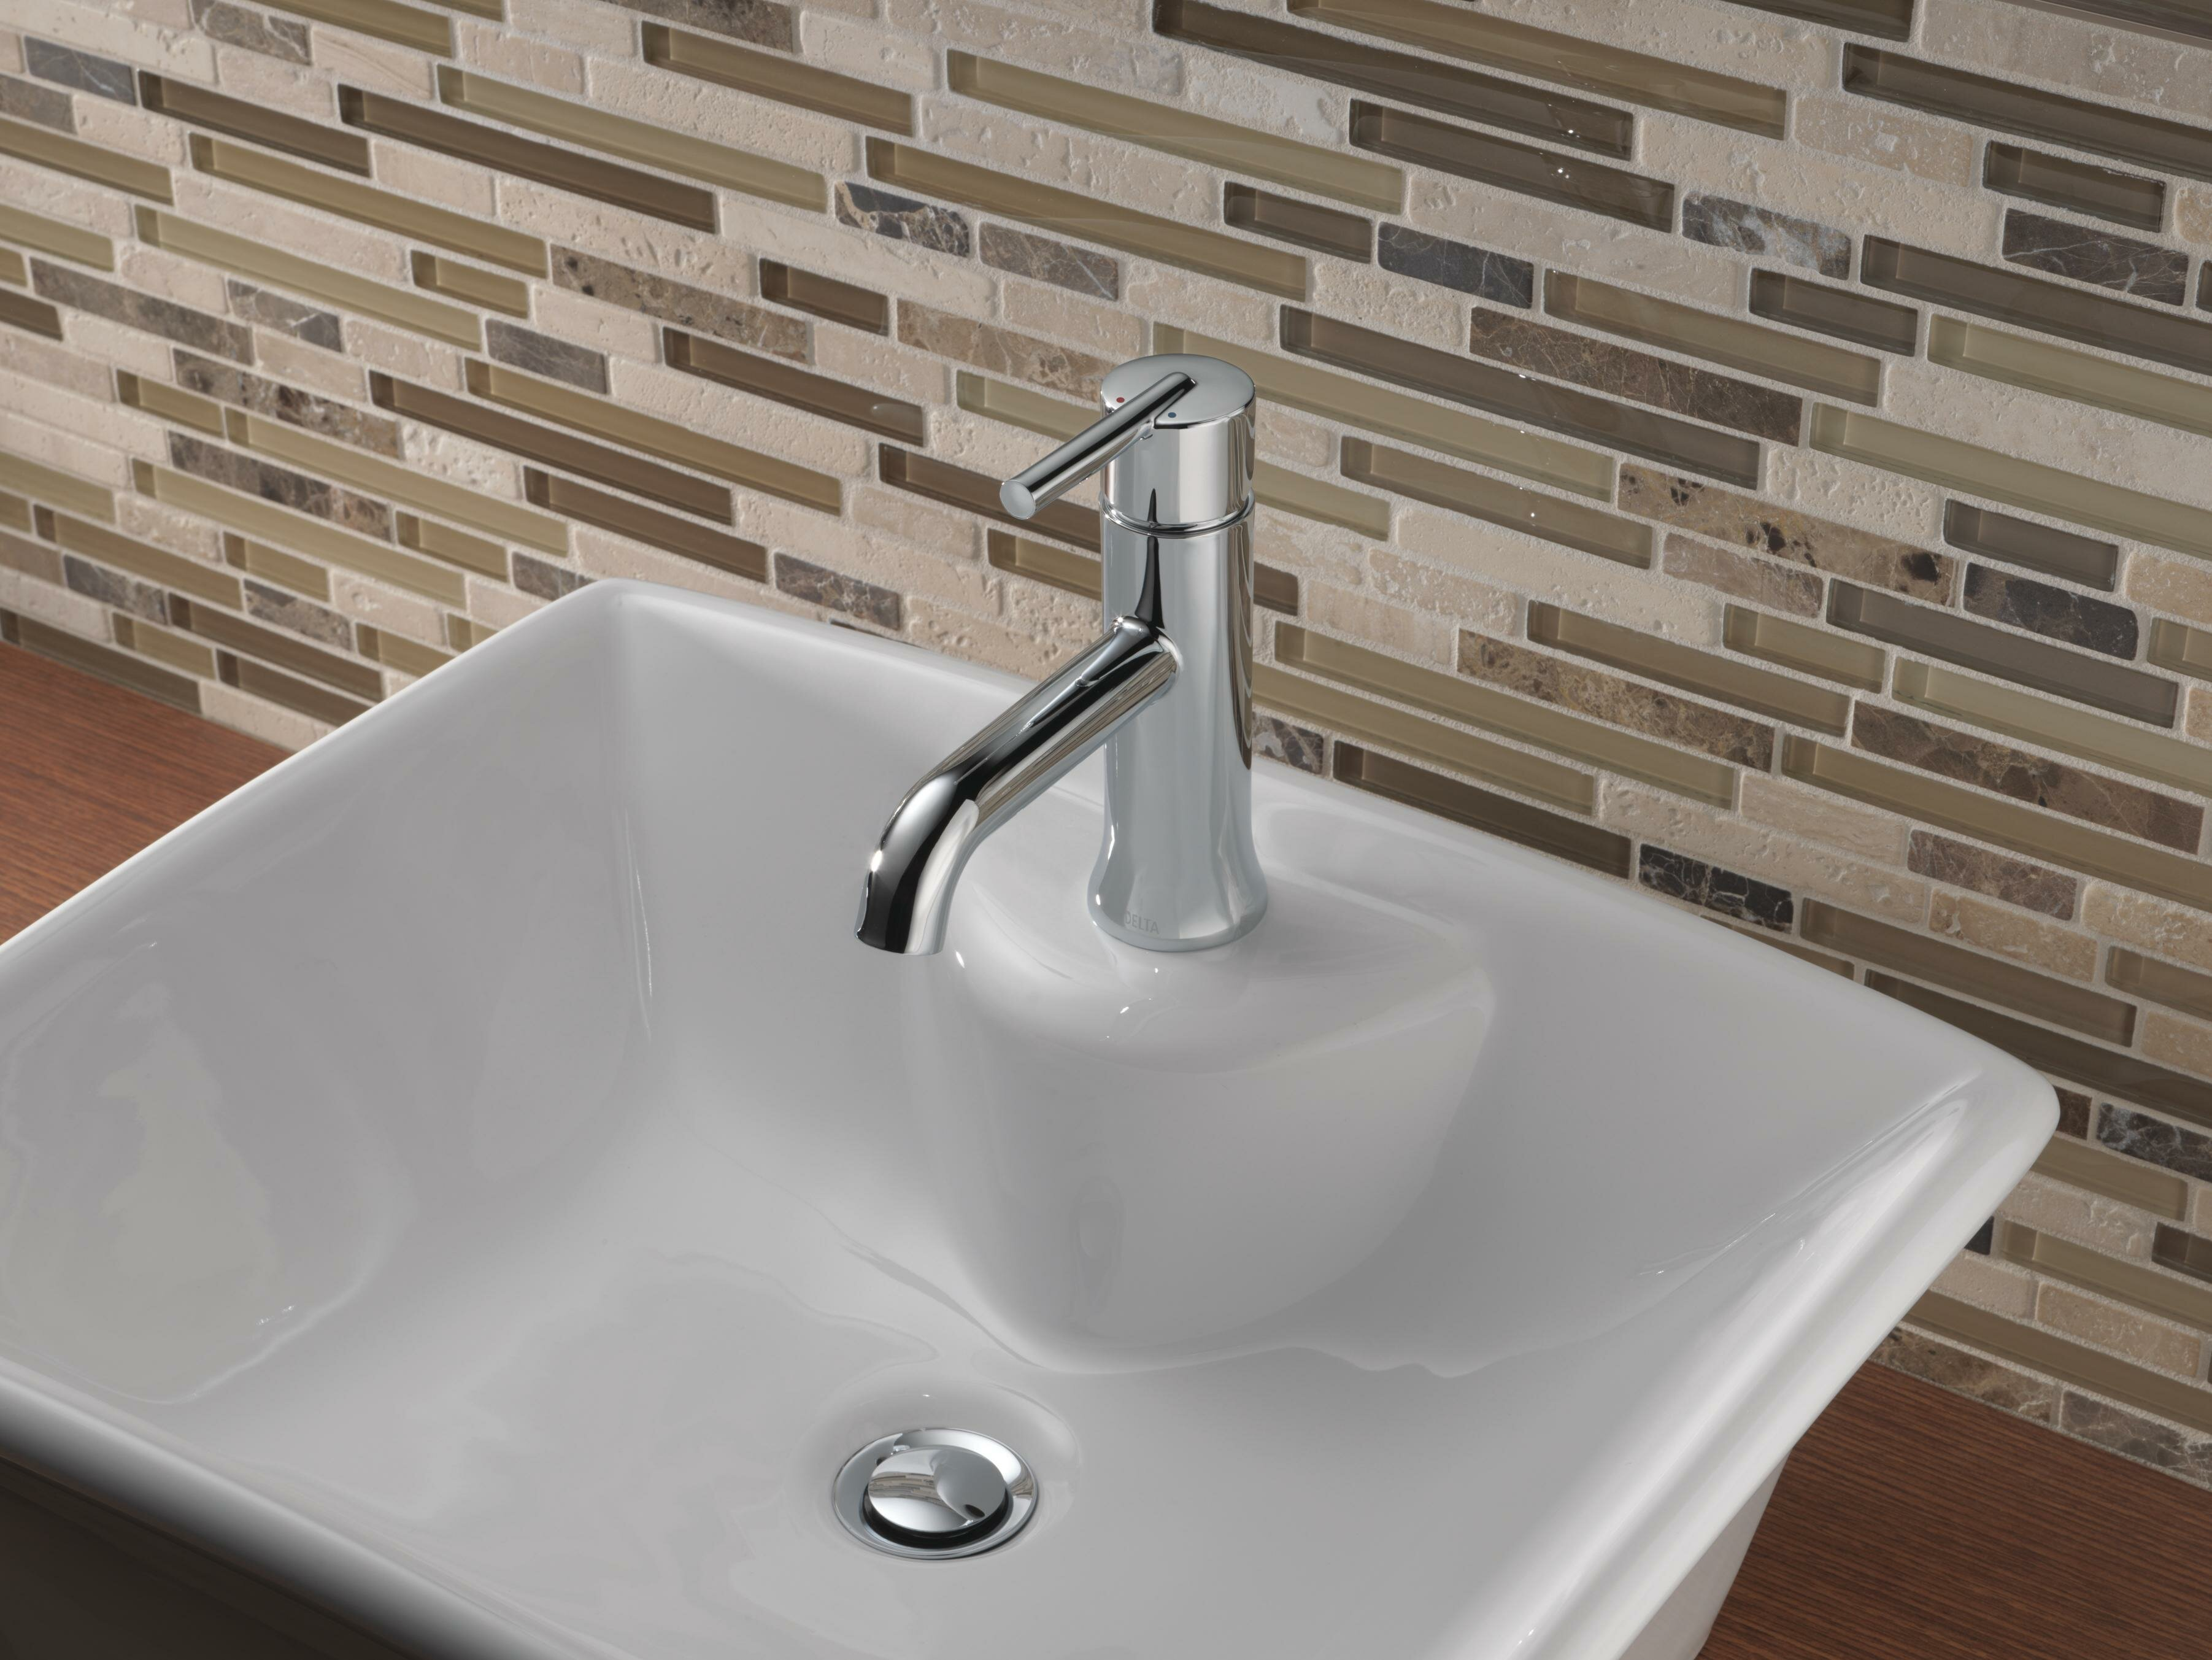 tub faucet trinsic delta hand shower additional fjord with handles faucets bathtub handheld bathroom